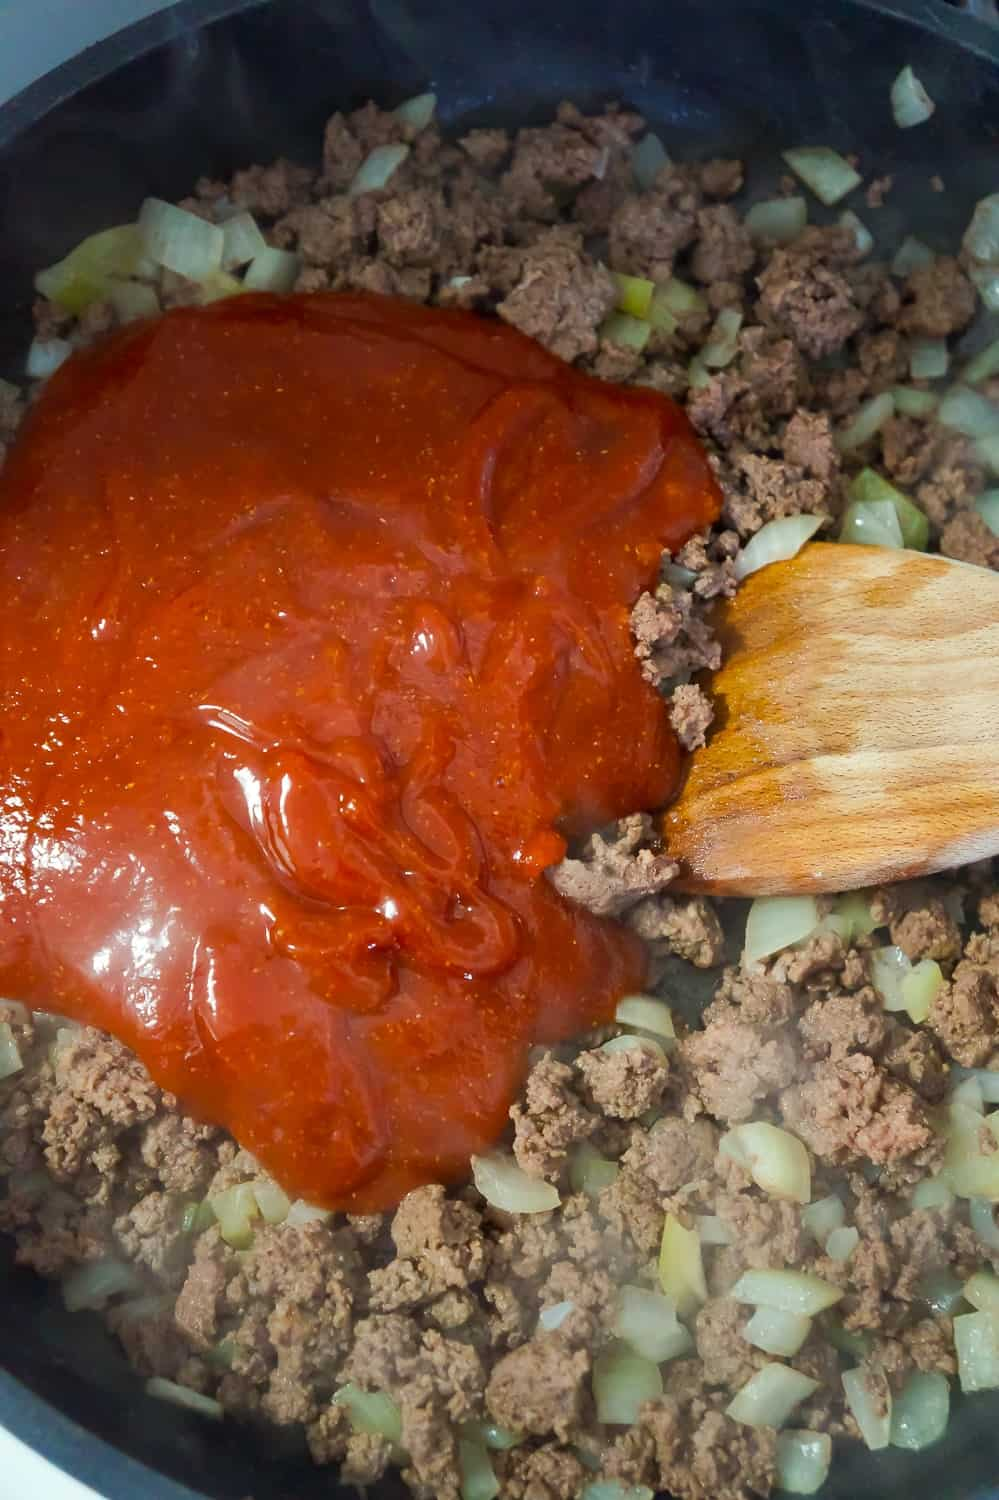 sloppy joe sauce added to cooked ground beef in a frying pan